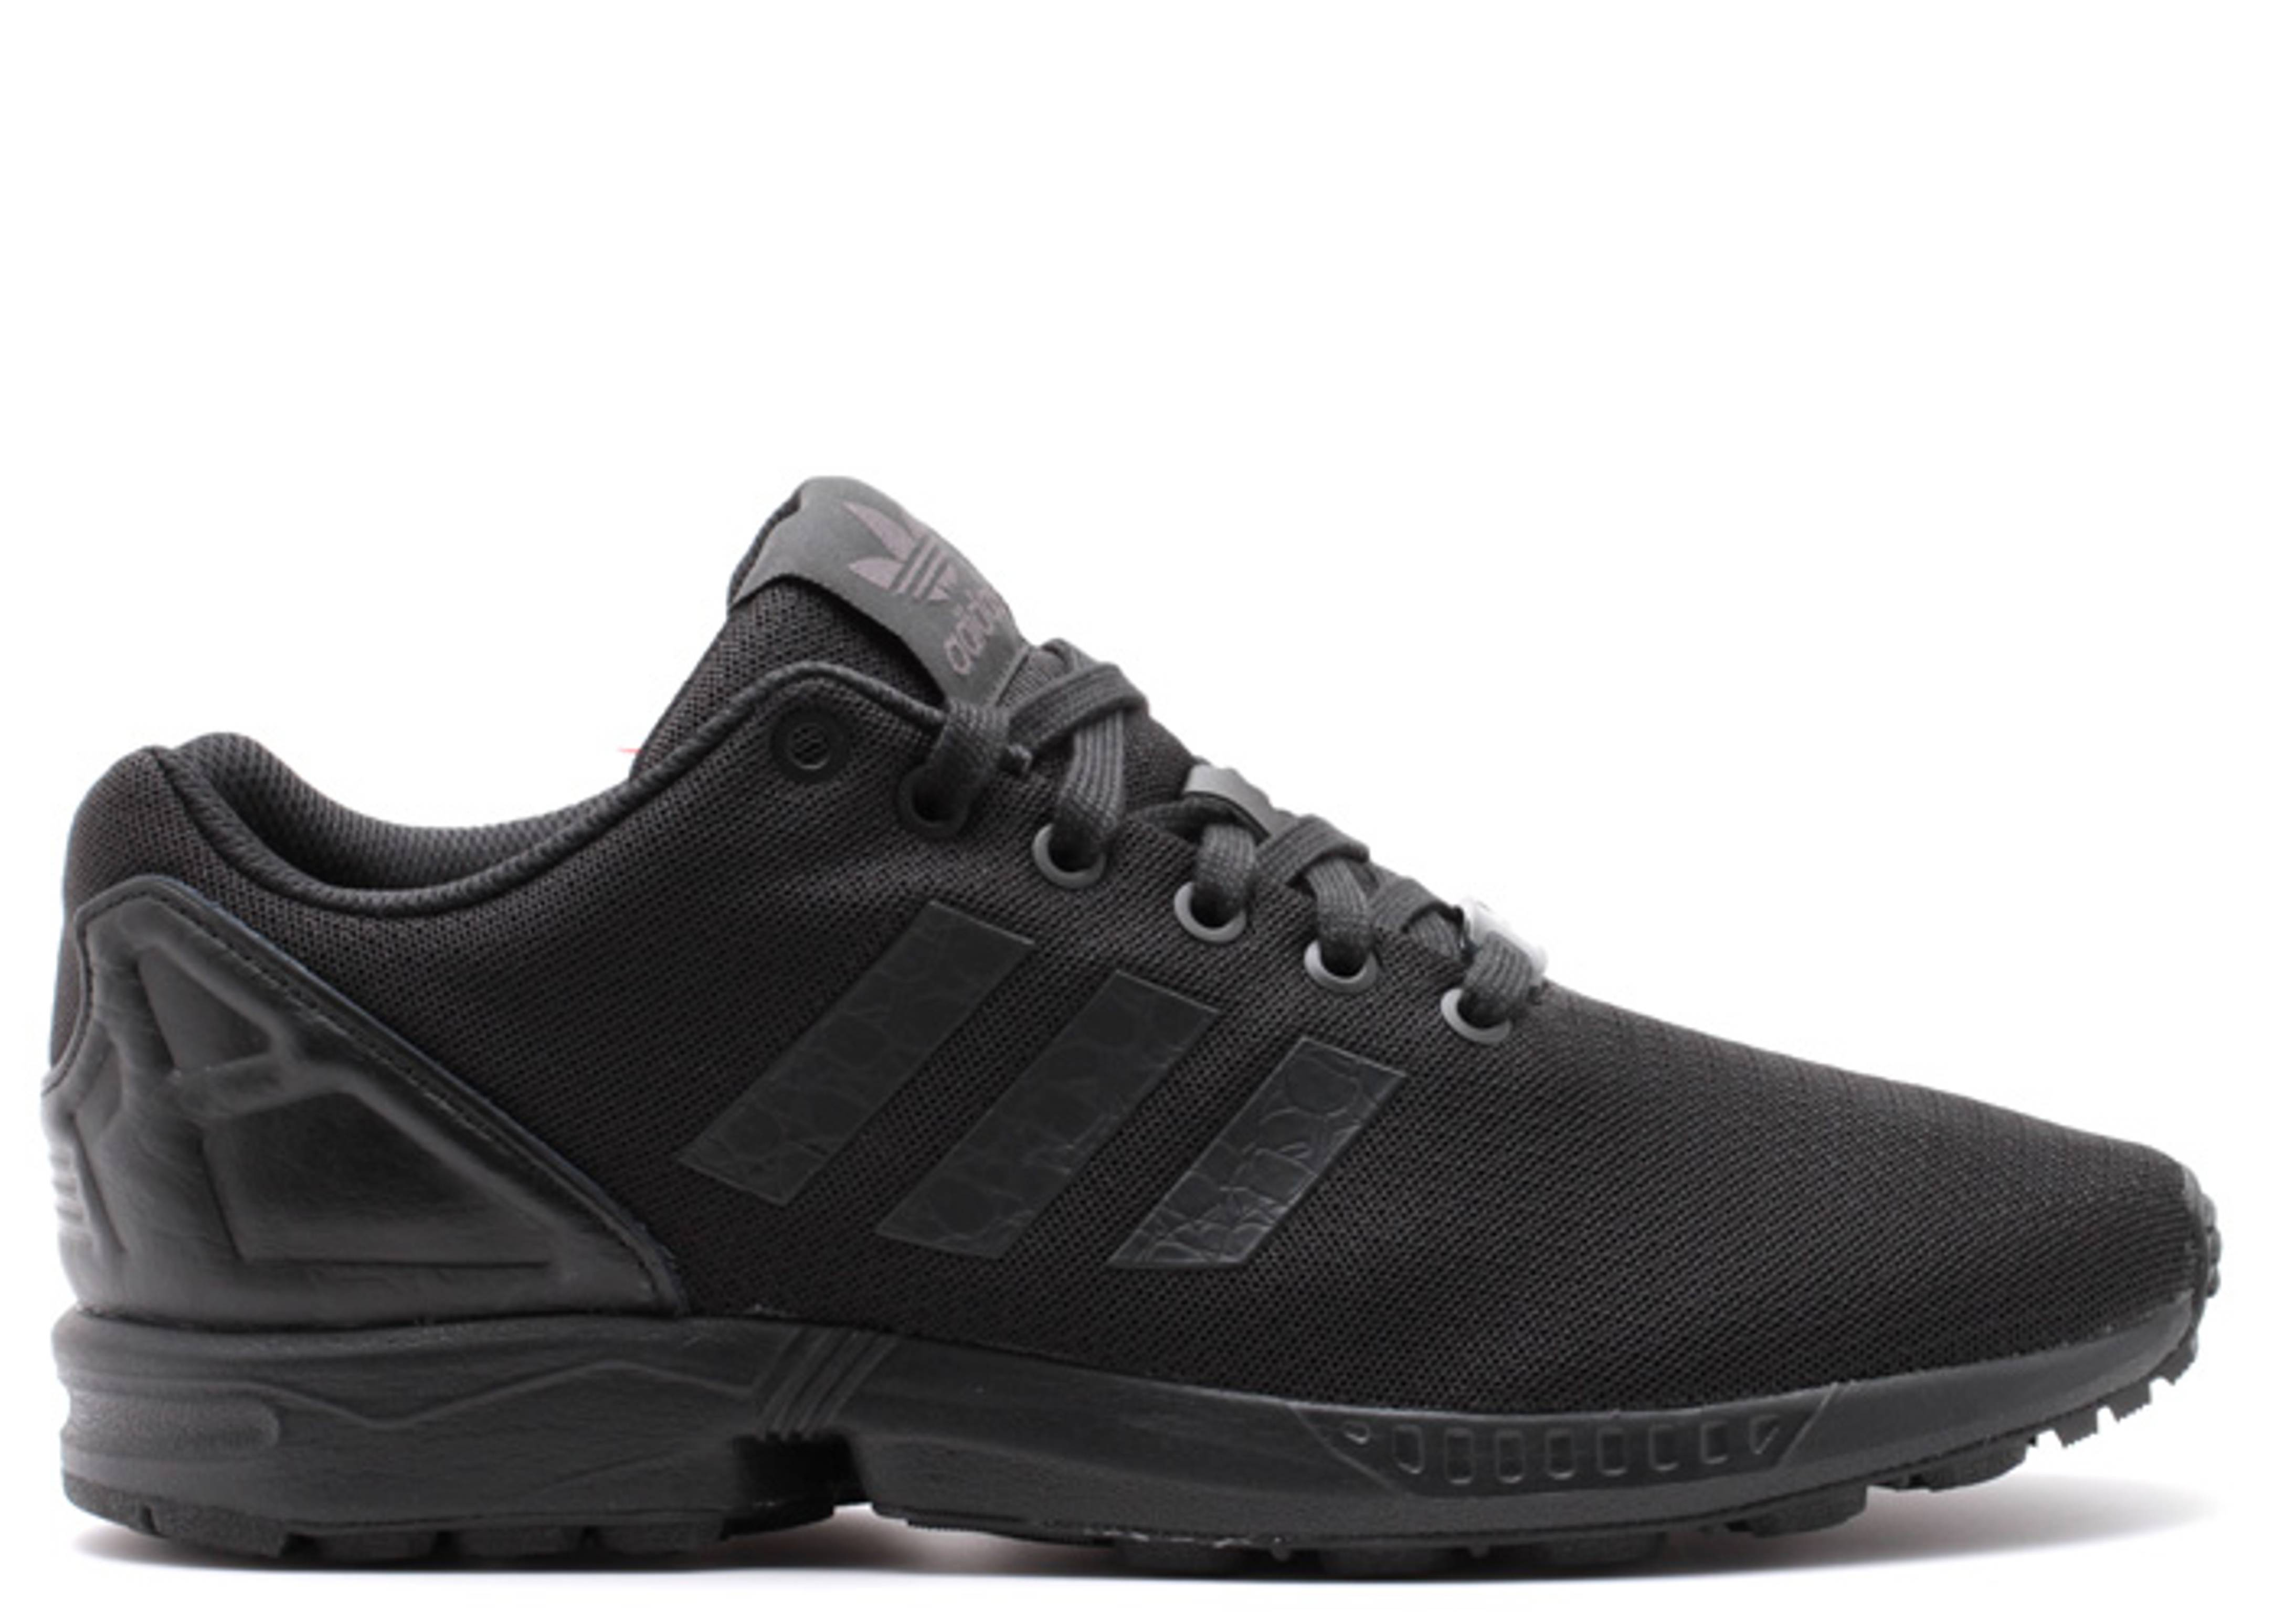 separation shoes a0c75 879cf Zx Flux